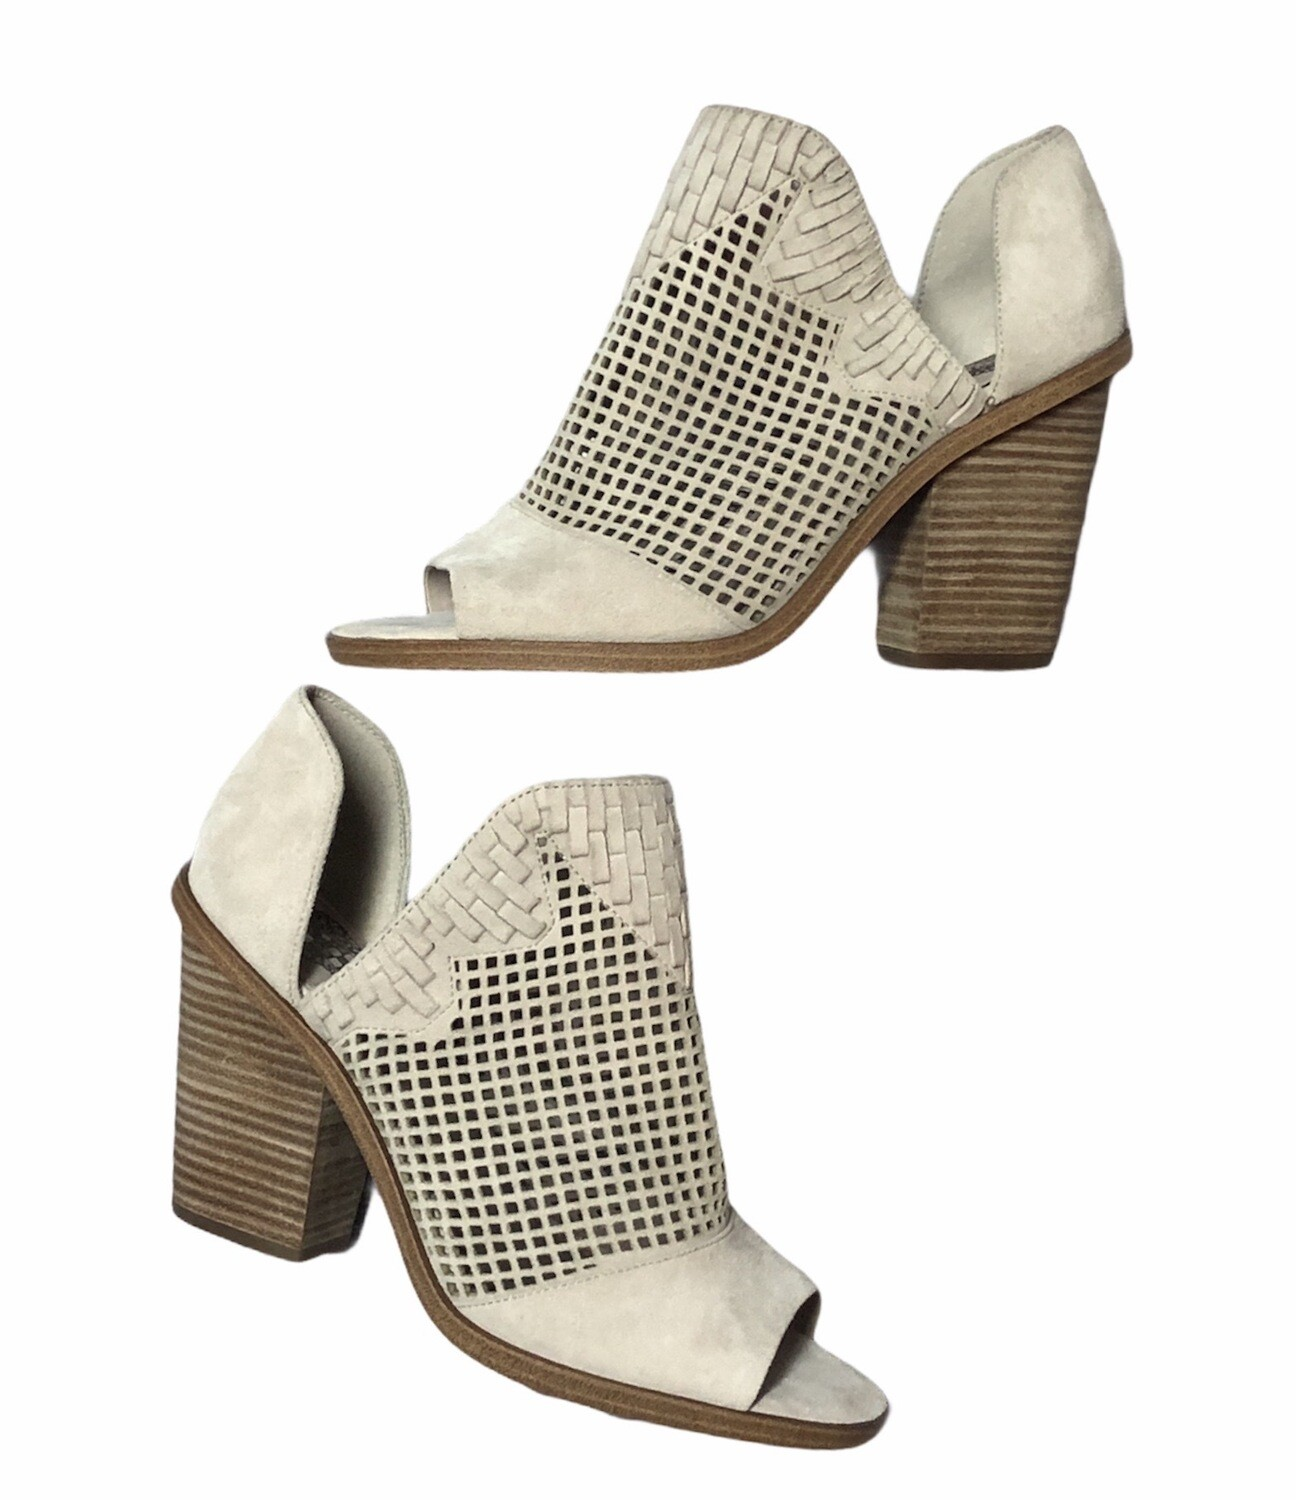 New VINCE CAMUTO Perforated Suede Peep Toe Booties size 9 1/2